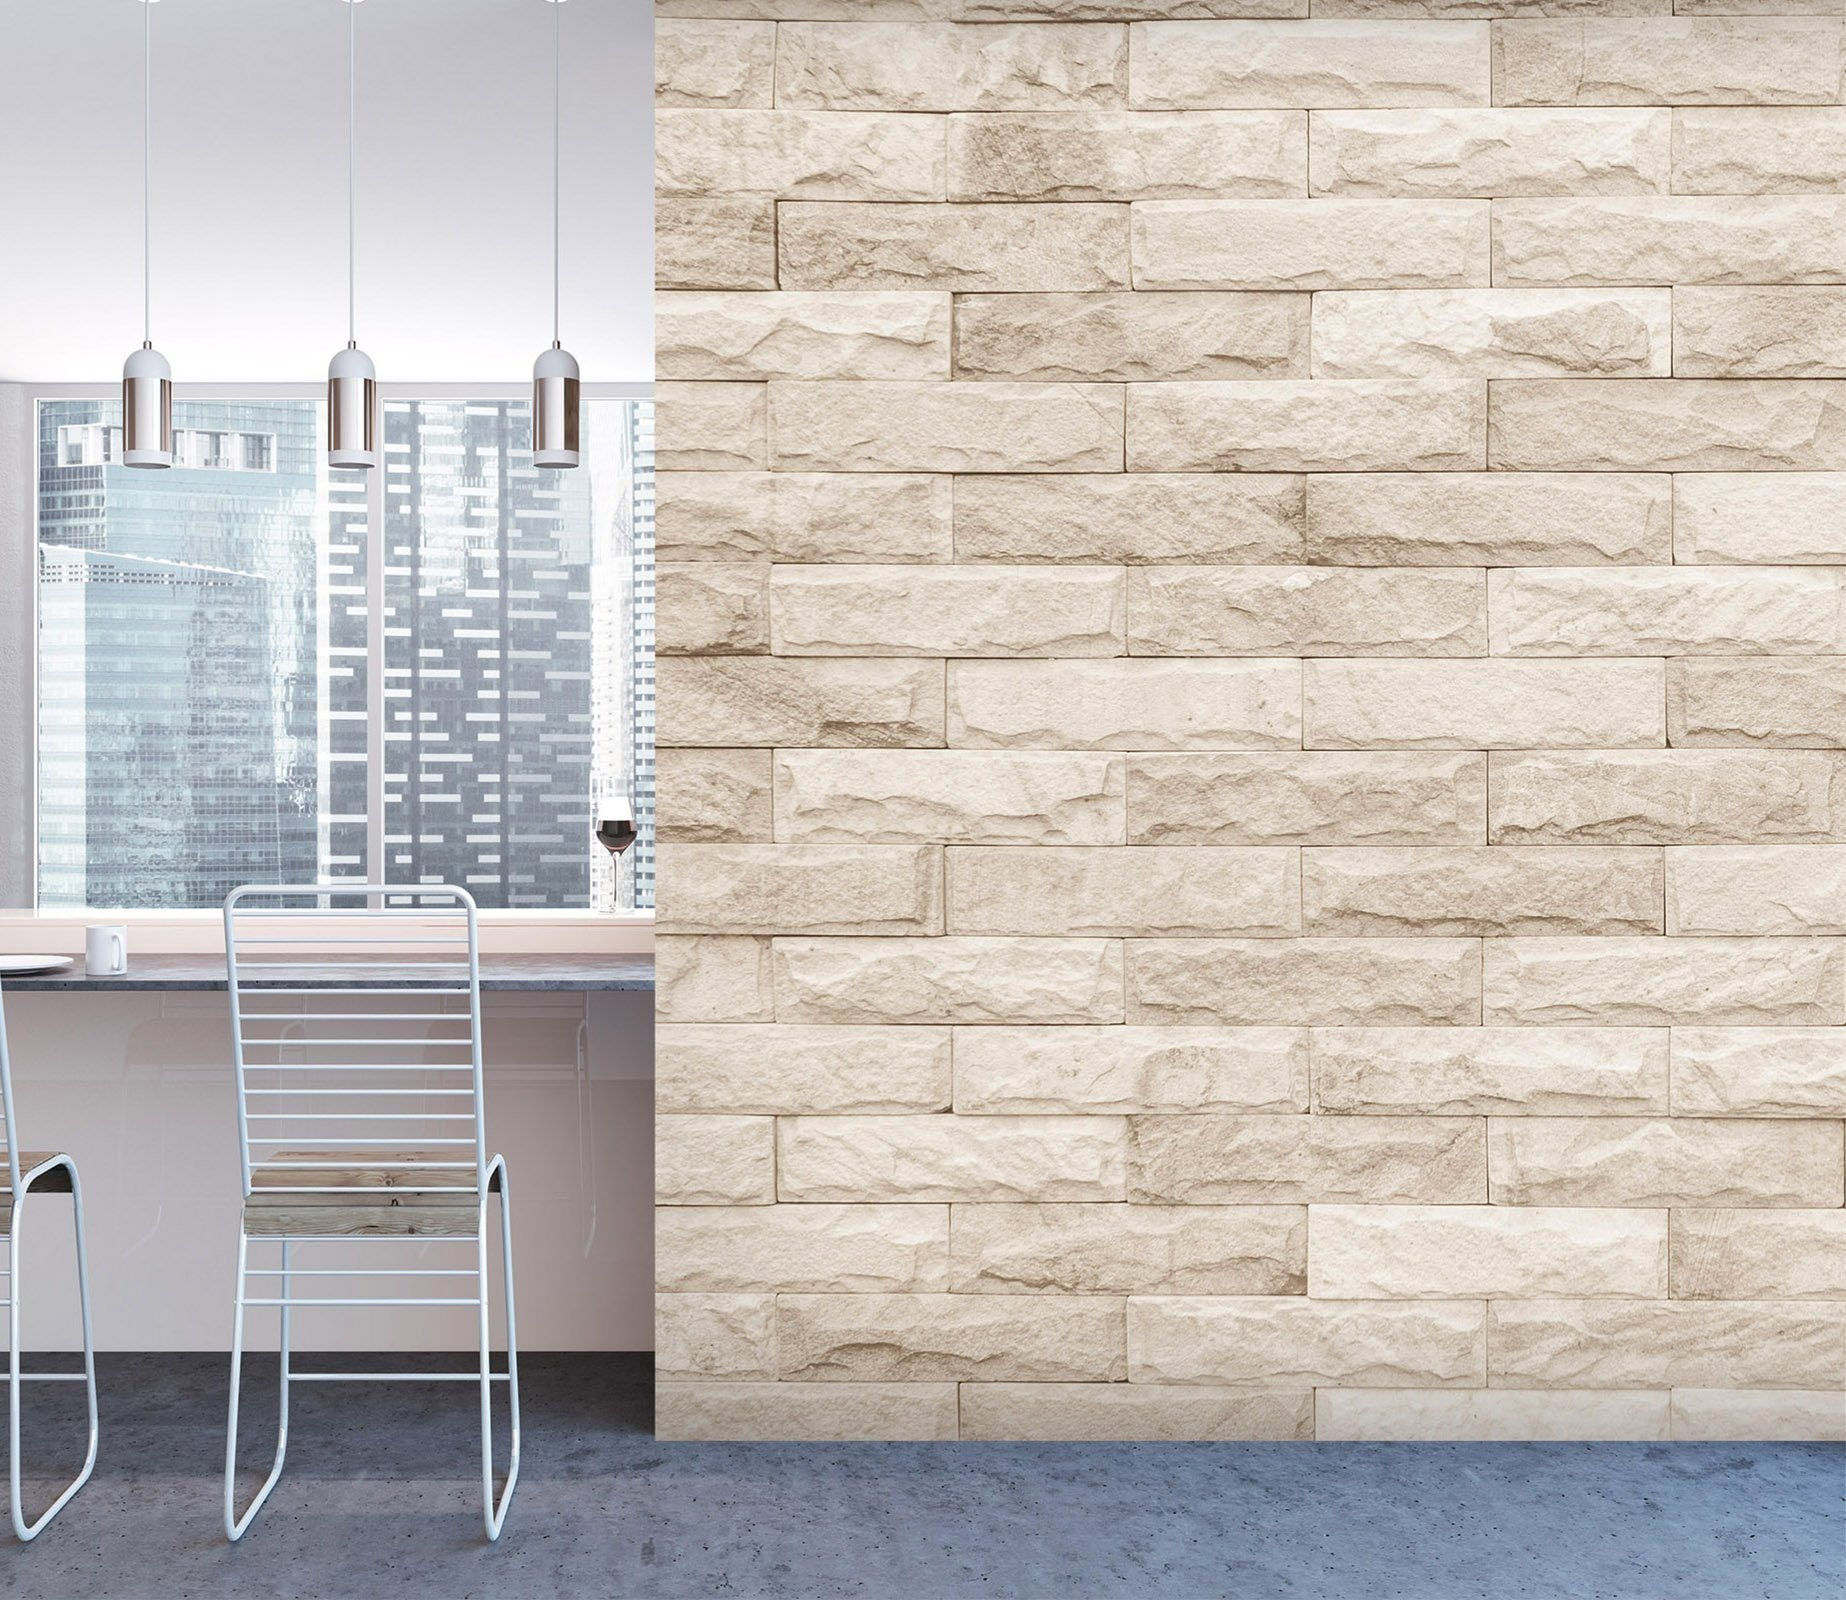 3D Stereoscopic Brick Wall 072 Marble Tile Texture Wallpaper AJ Wallpaper 2